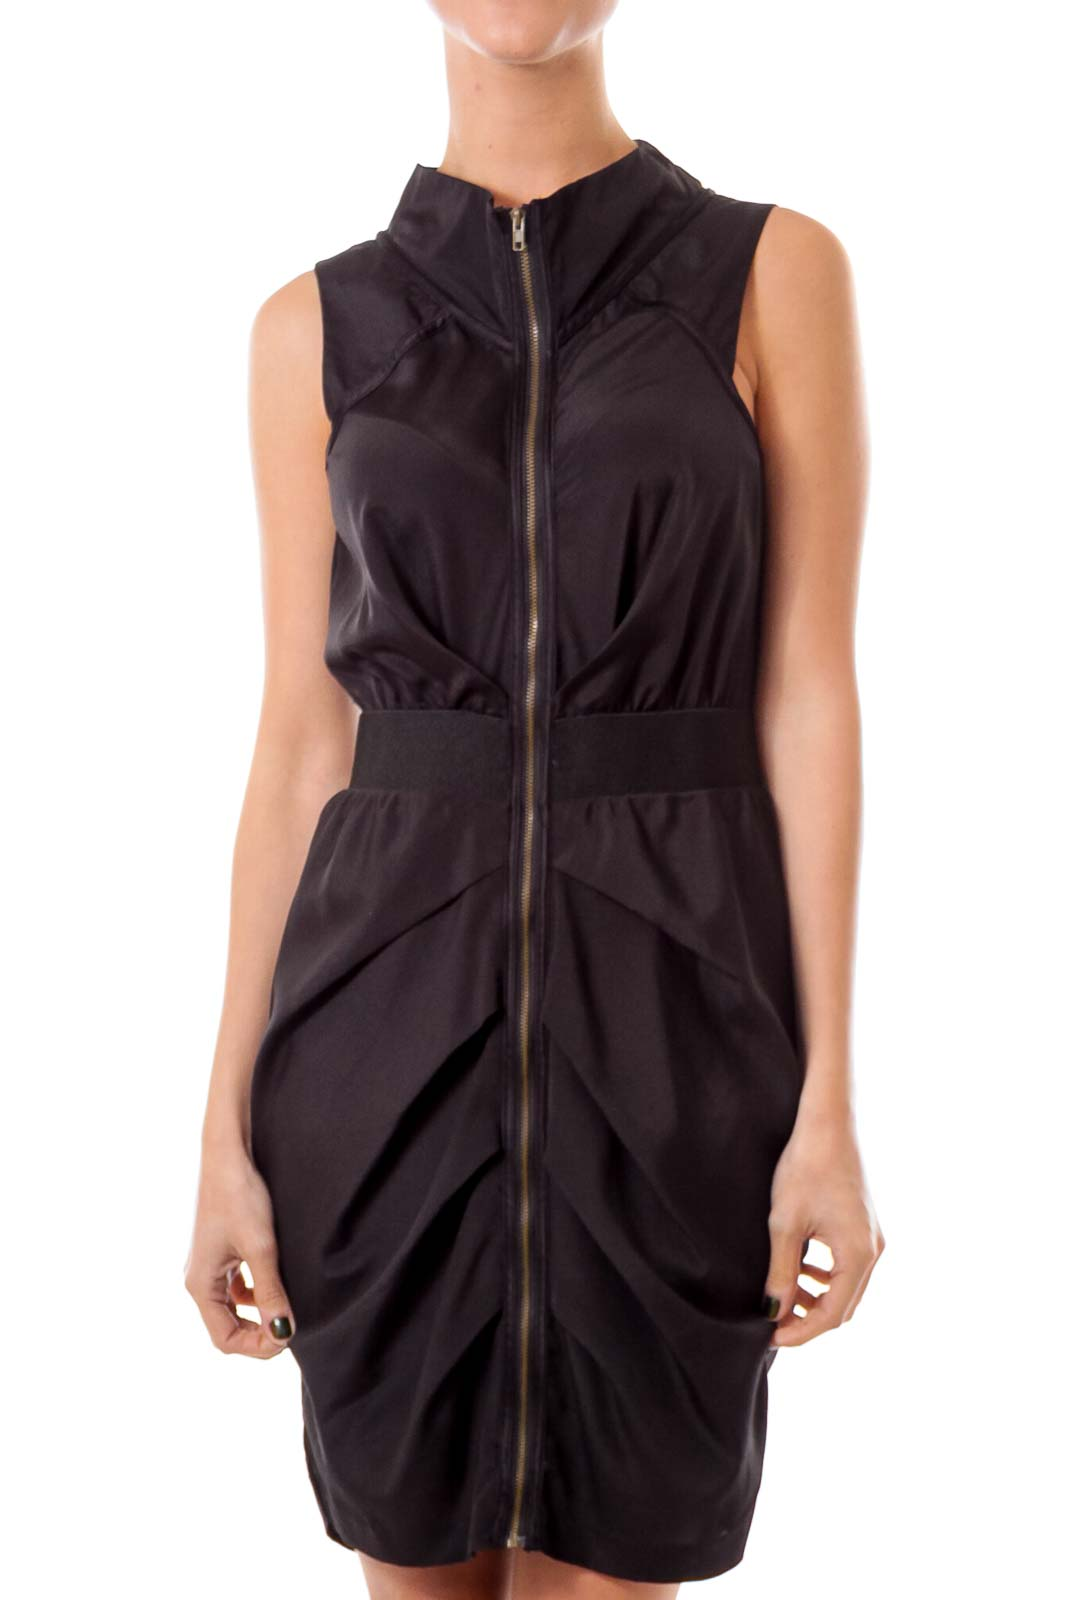 Black Zip Up Sheath Dress Front